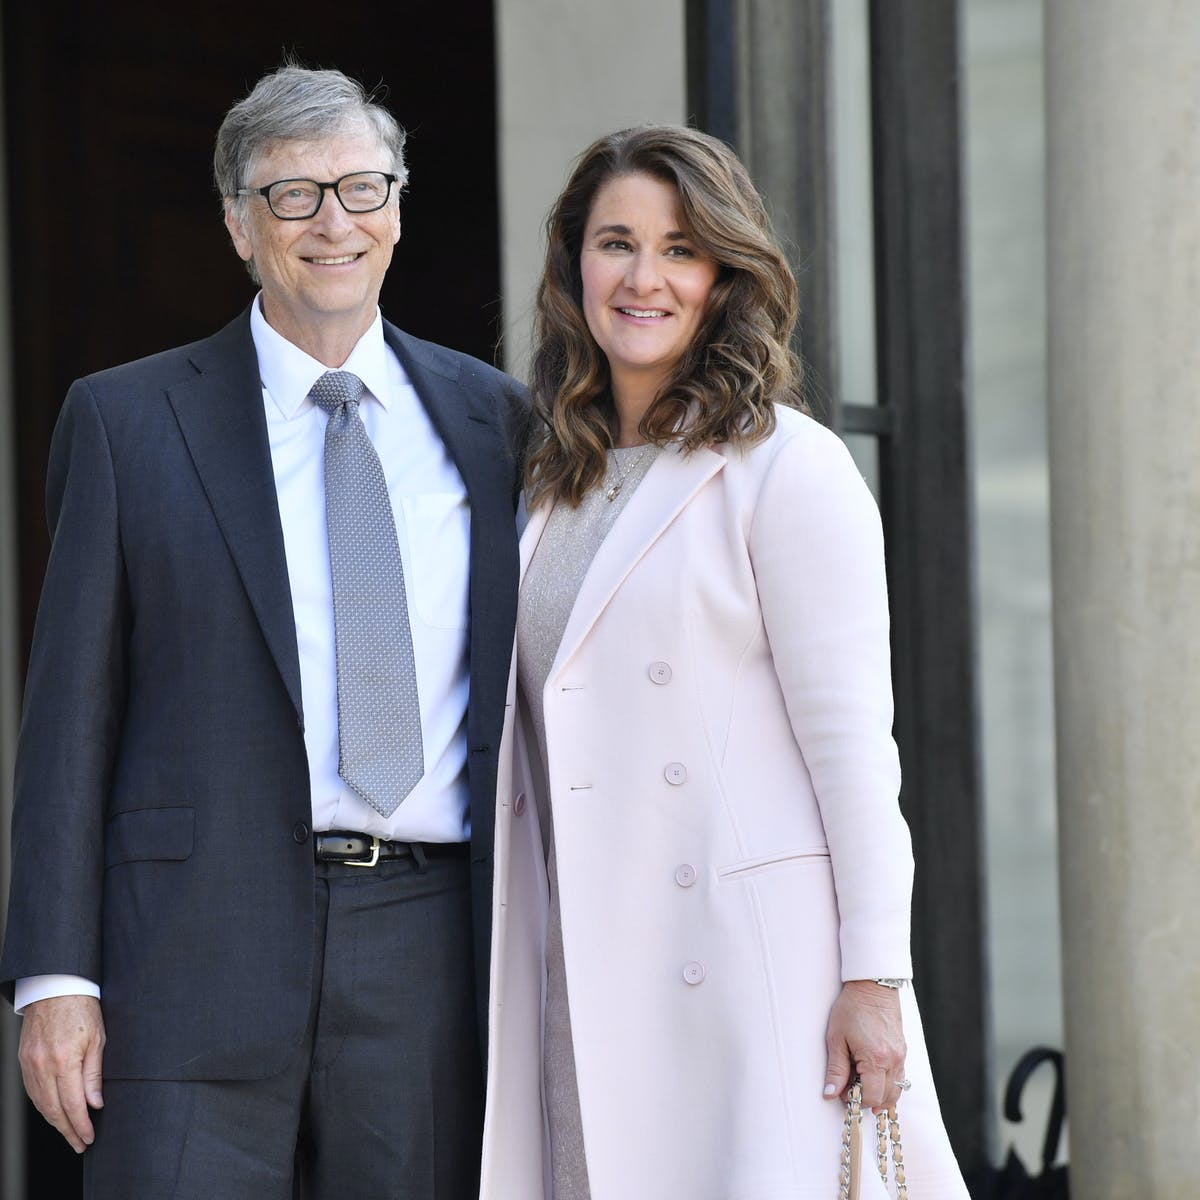 Bill Gates revealed the reason for his divorce from Melinda to his friends